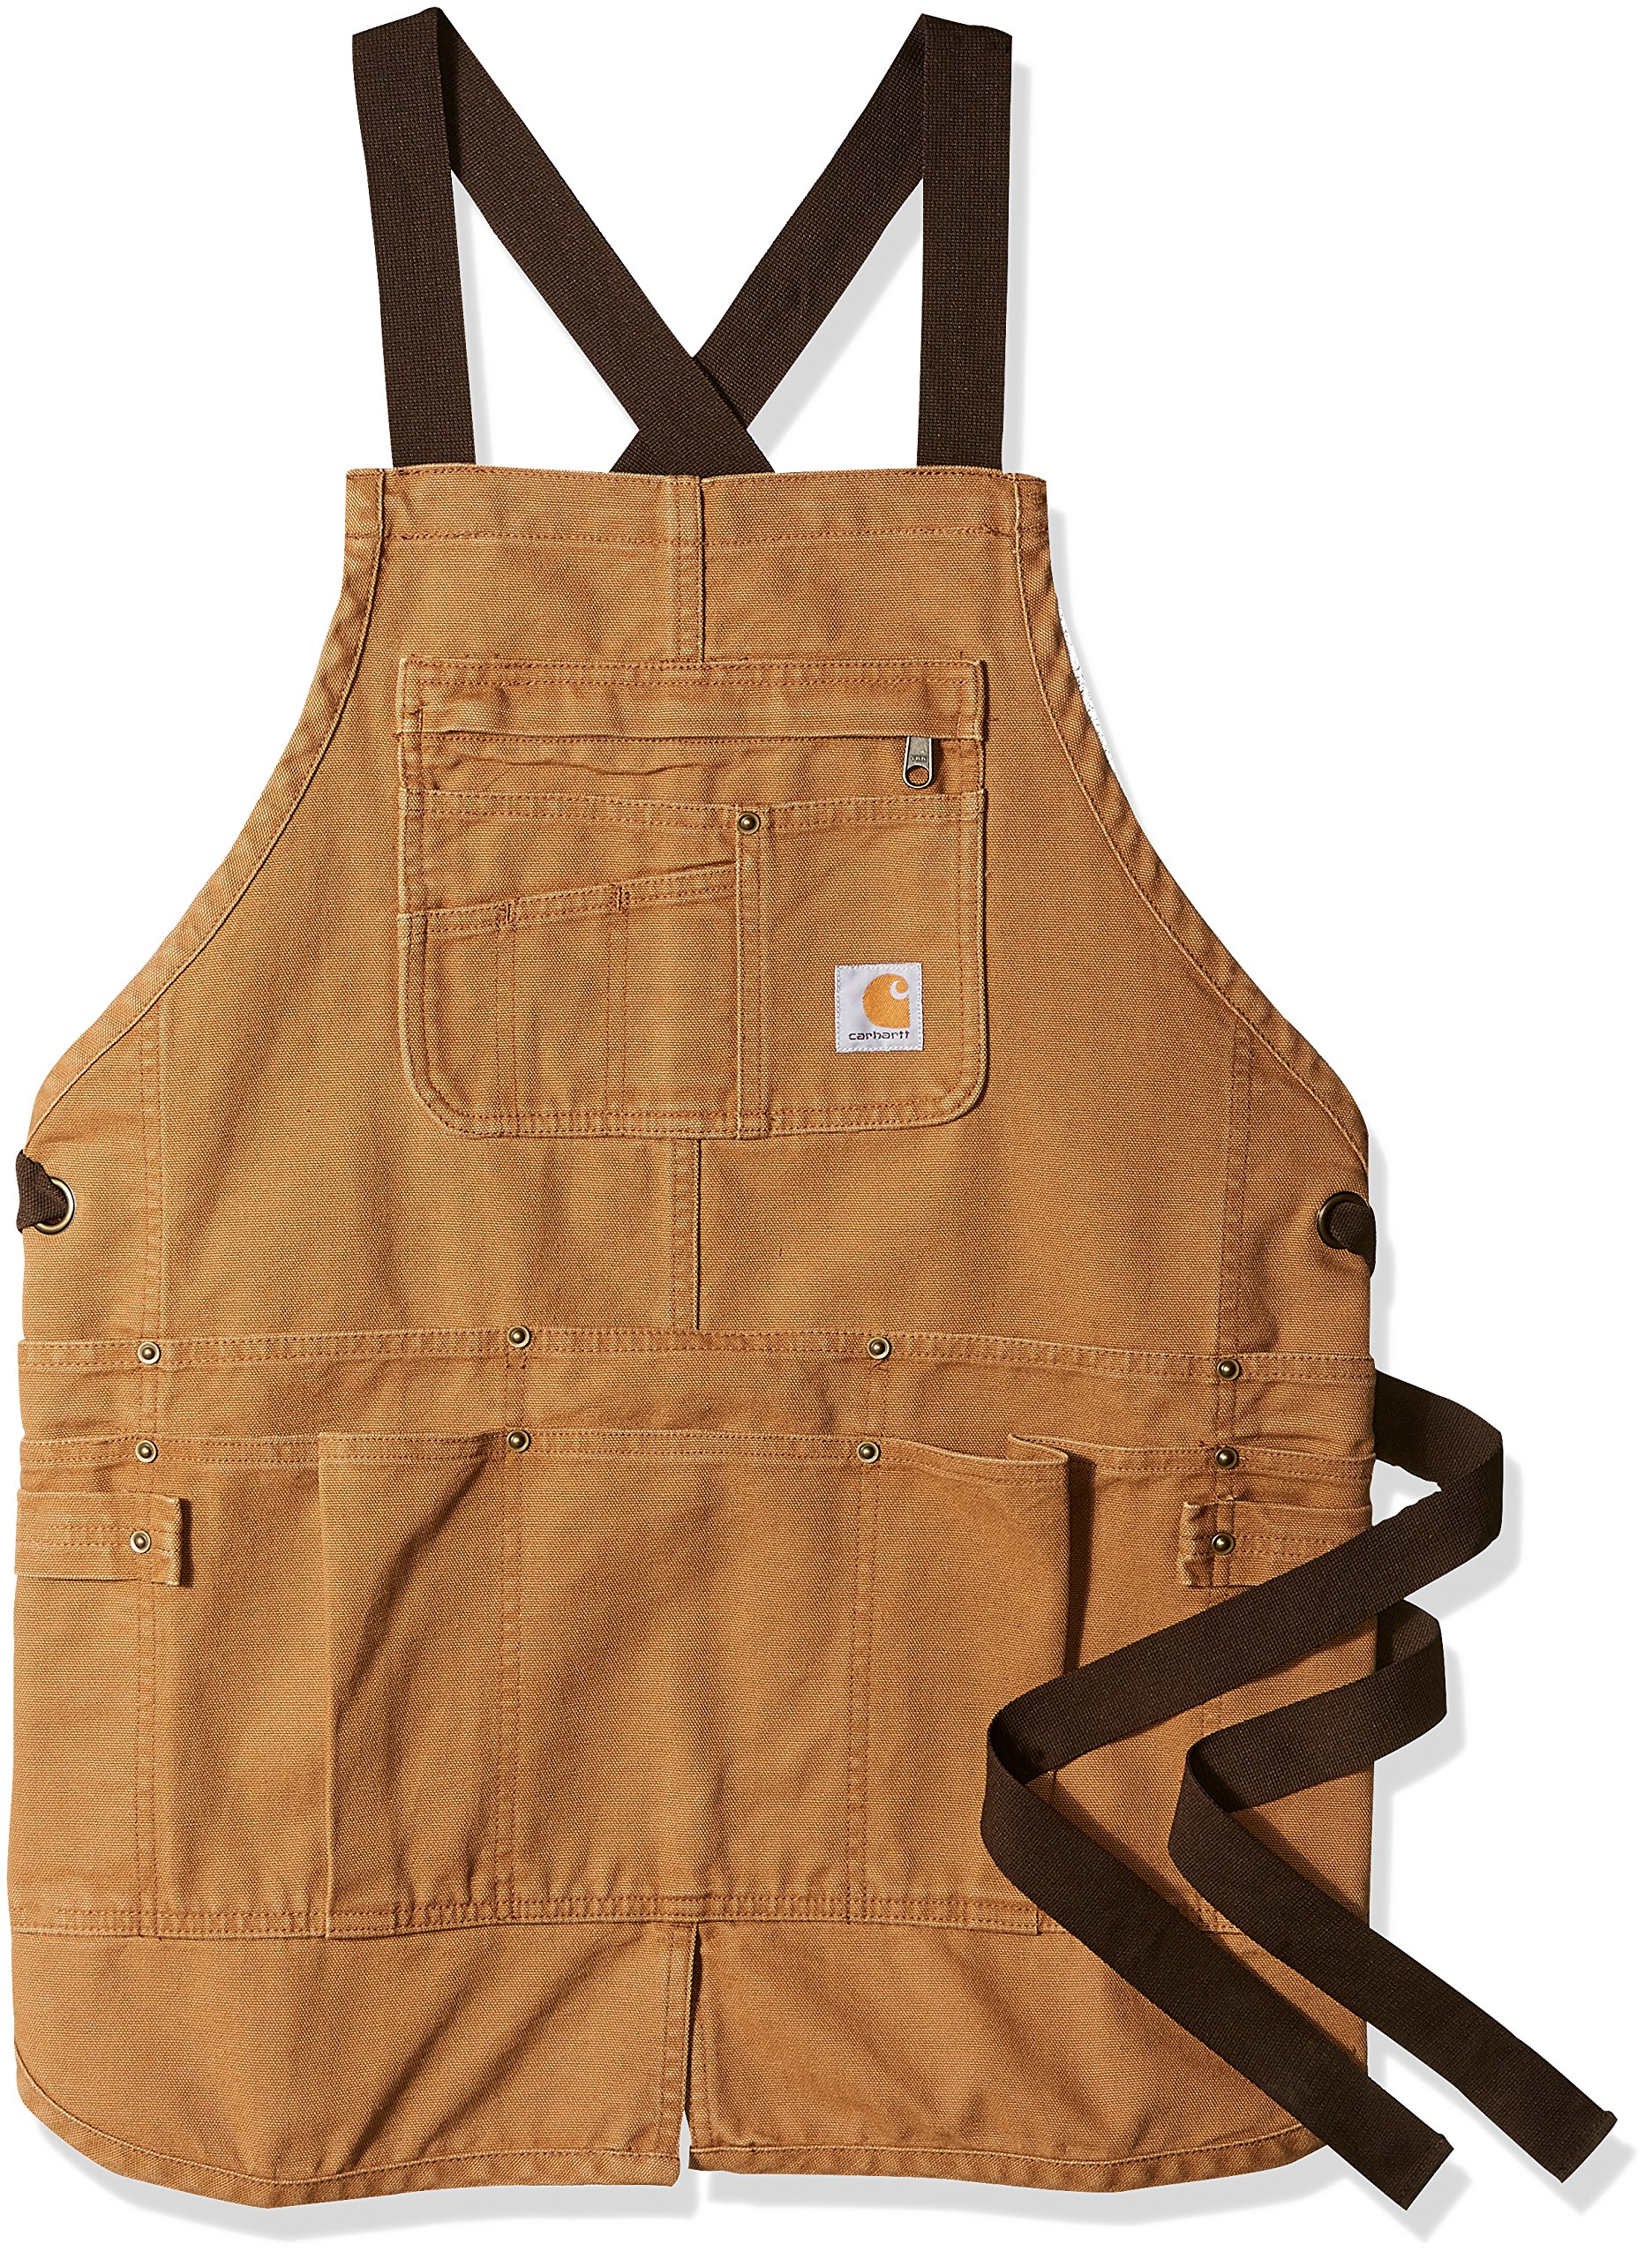 Carhartt Women's Weathered Duck Wildwood Apron, Brown, OFA by Carhartt